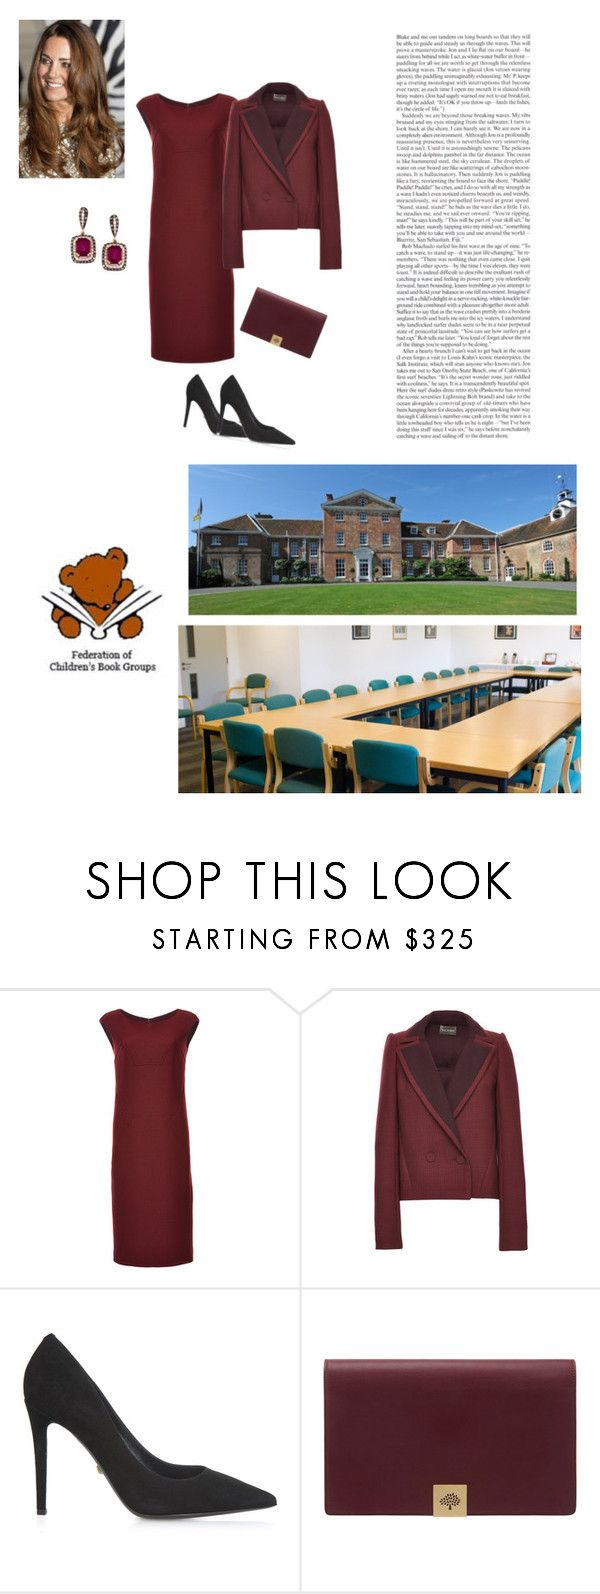 """""""Surprise Appearance for the Federation of Children's Book Groups' Conference 2017: """"Write Around the World: Broadening Horizons"""" at the Oratory School, Reading"""" by theduchessroyal ❤ liked on Polyvore featuring Zac Posen, Diane Von Furstenberg and Mulberry"""